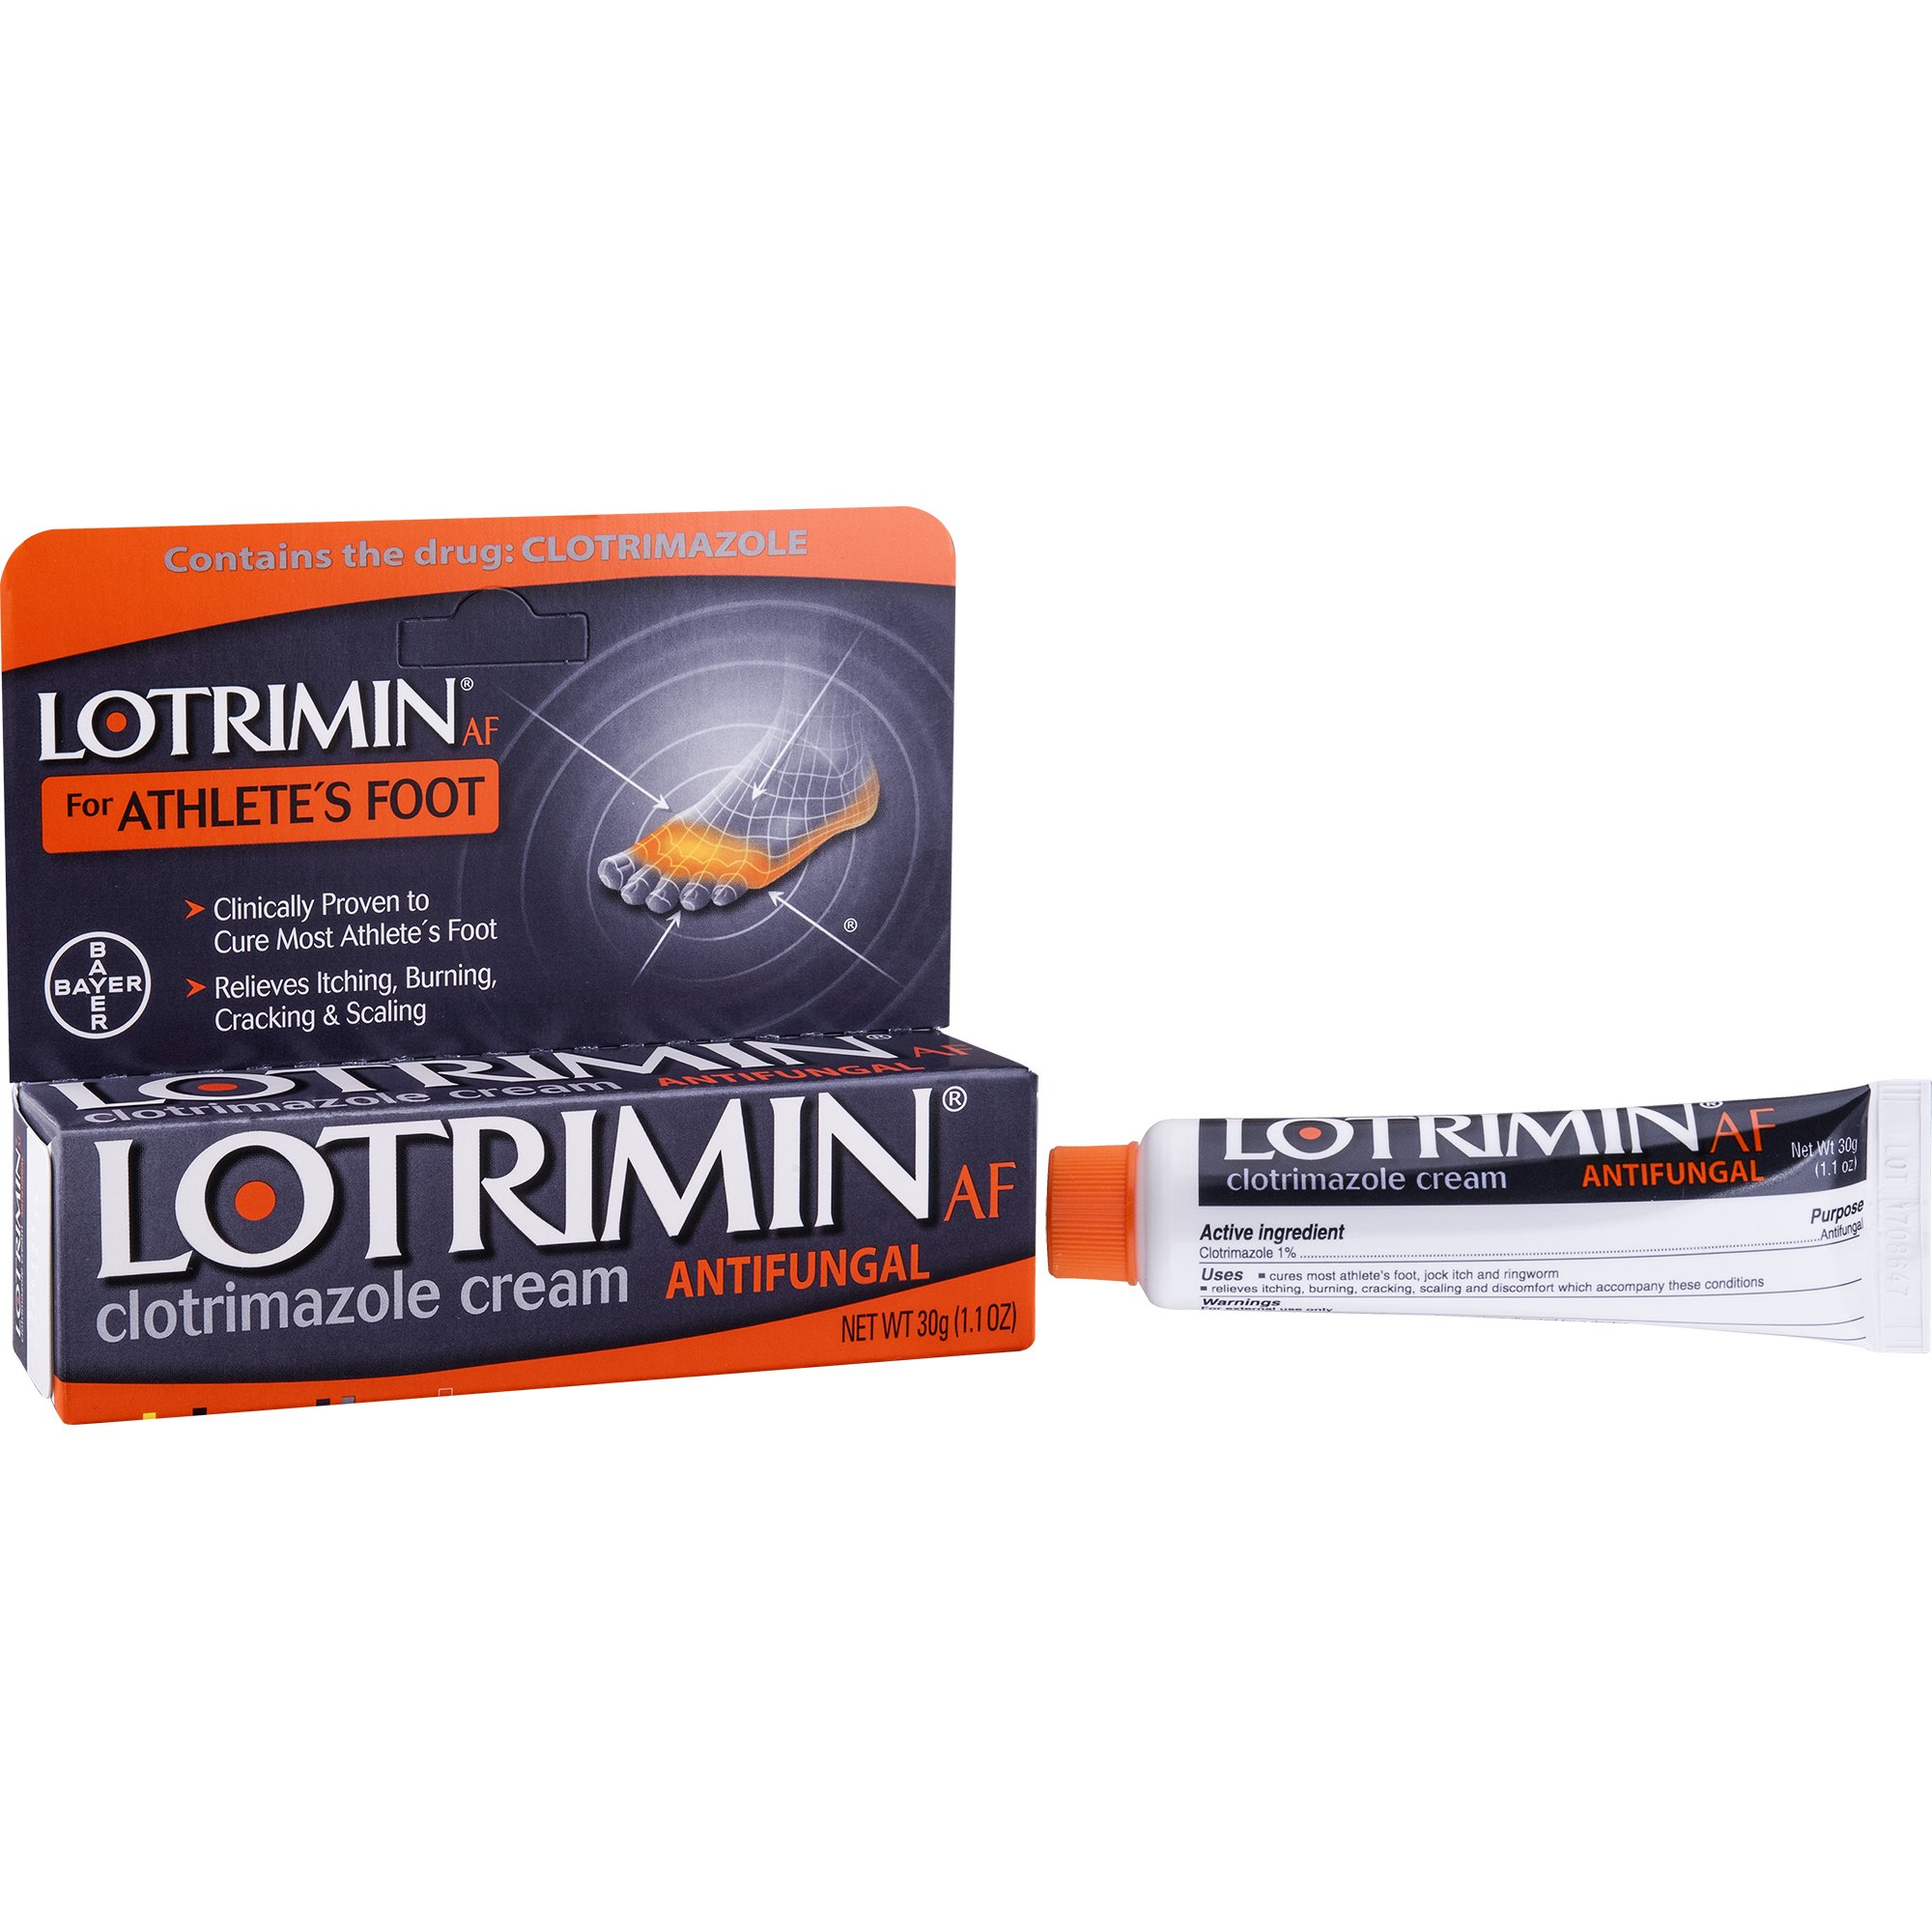 Lotrimin AF Cream for Athlete's Foot, Clotrimazole 1% Antifungal Treatment, Clinically Proven Effective Antifungal Treatment of Most AF, Jock Itch and Ringworm, Cream, 1.1 Ounce (30 Grams)